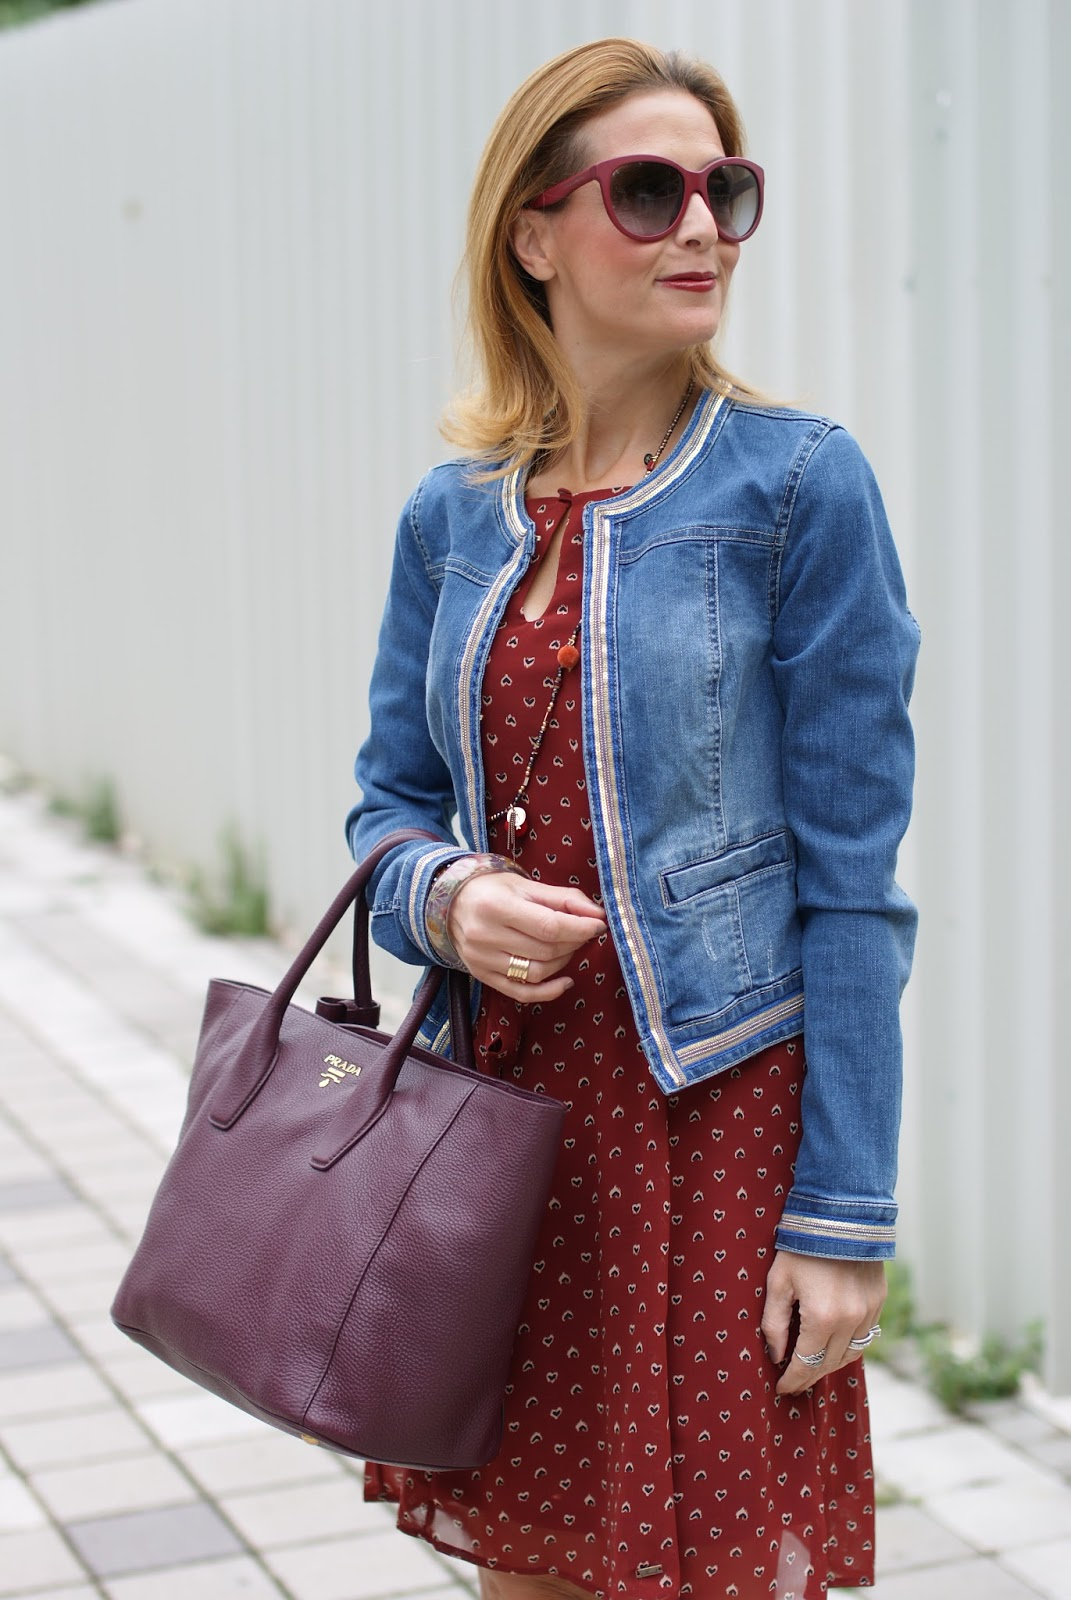 Mismash dress, Prada tote with Fall colors and Pimkie jacket on Fashion and Cookies fashion blog, fashion blogger style